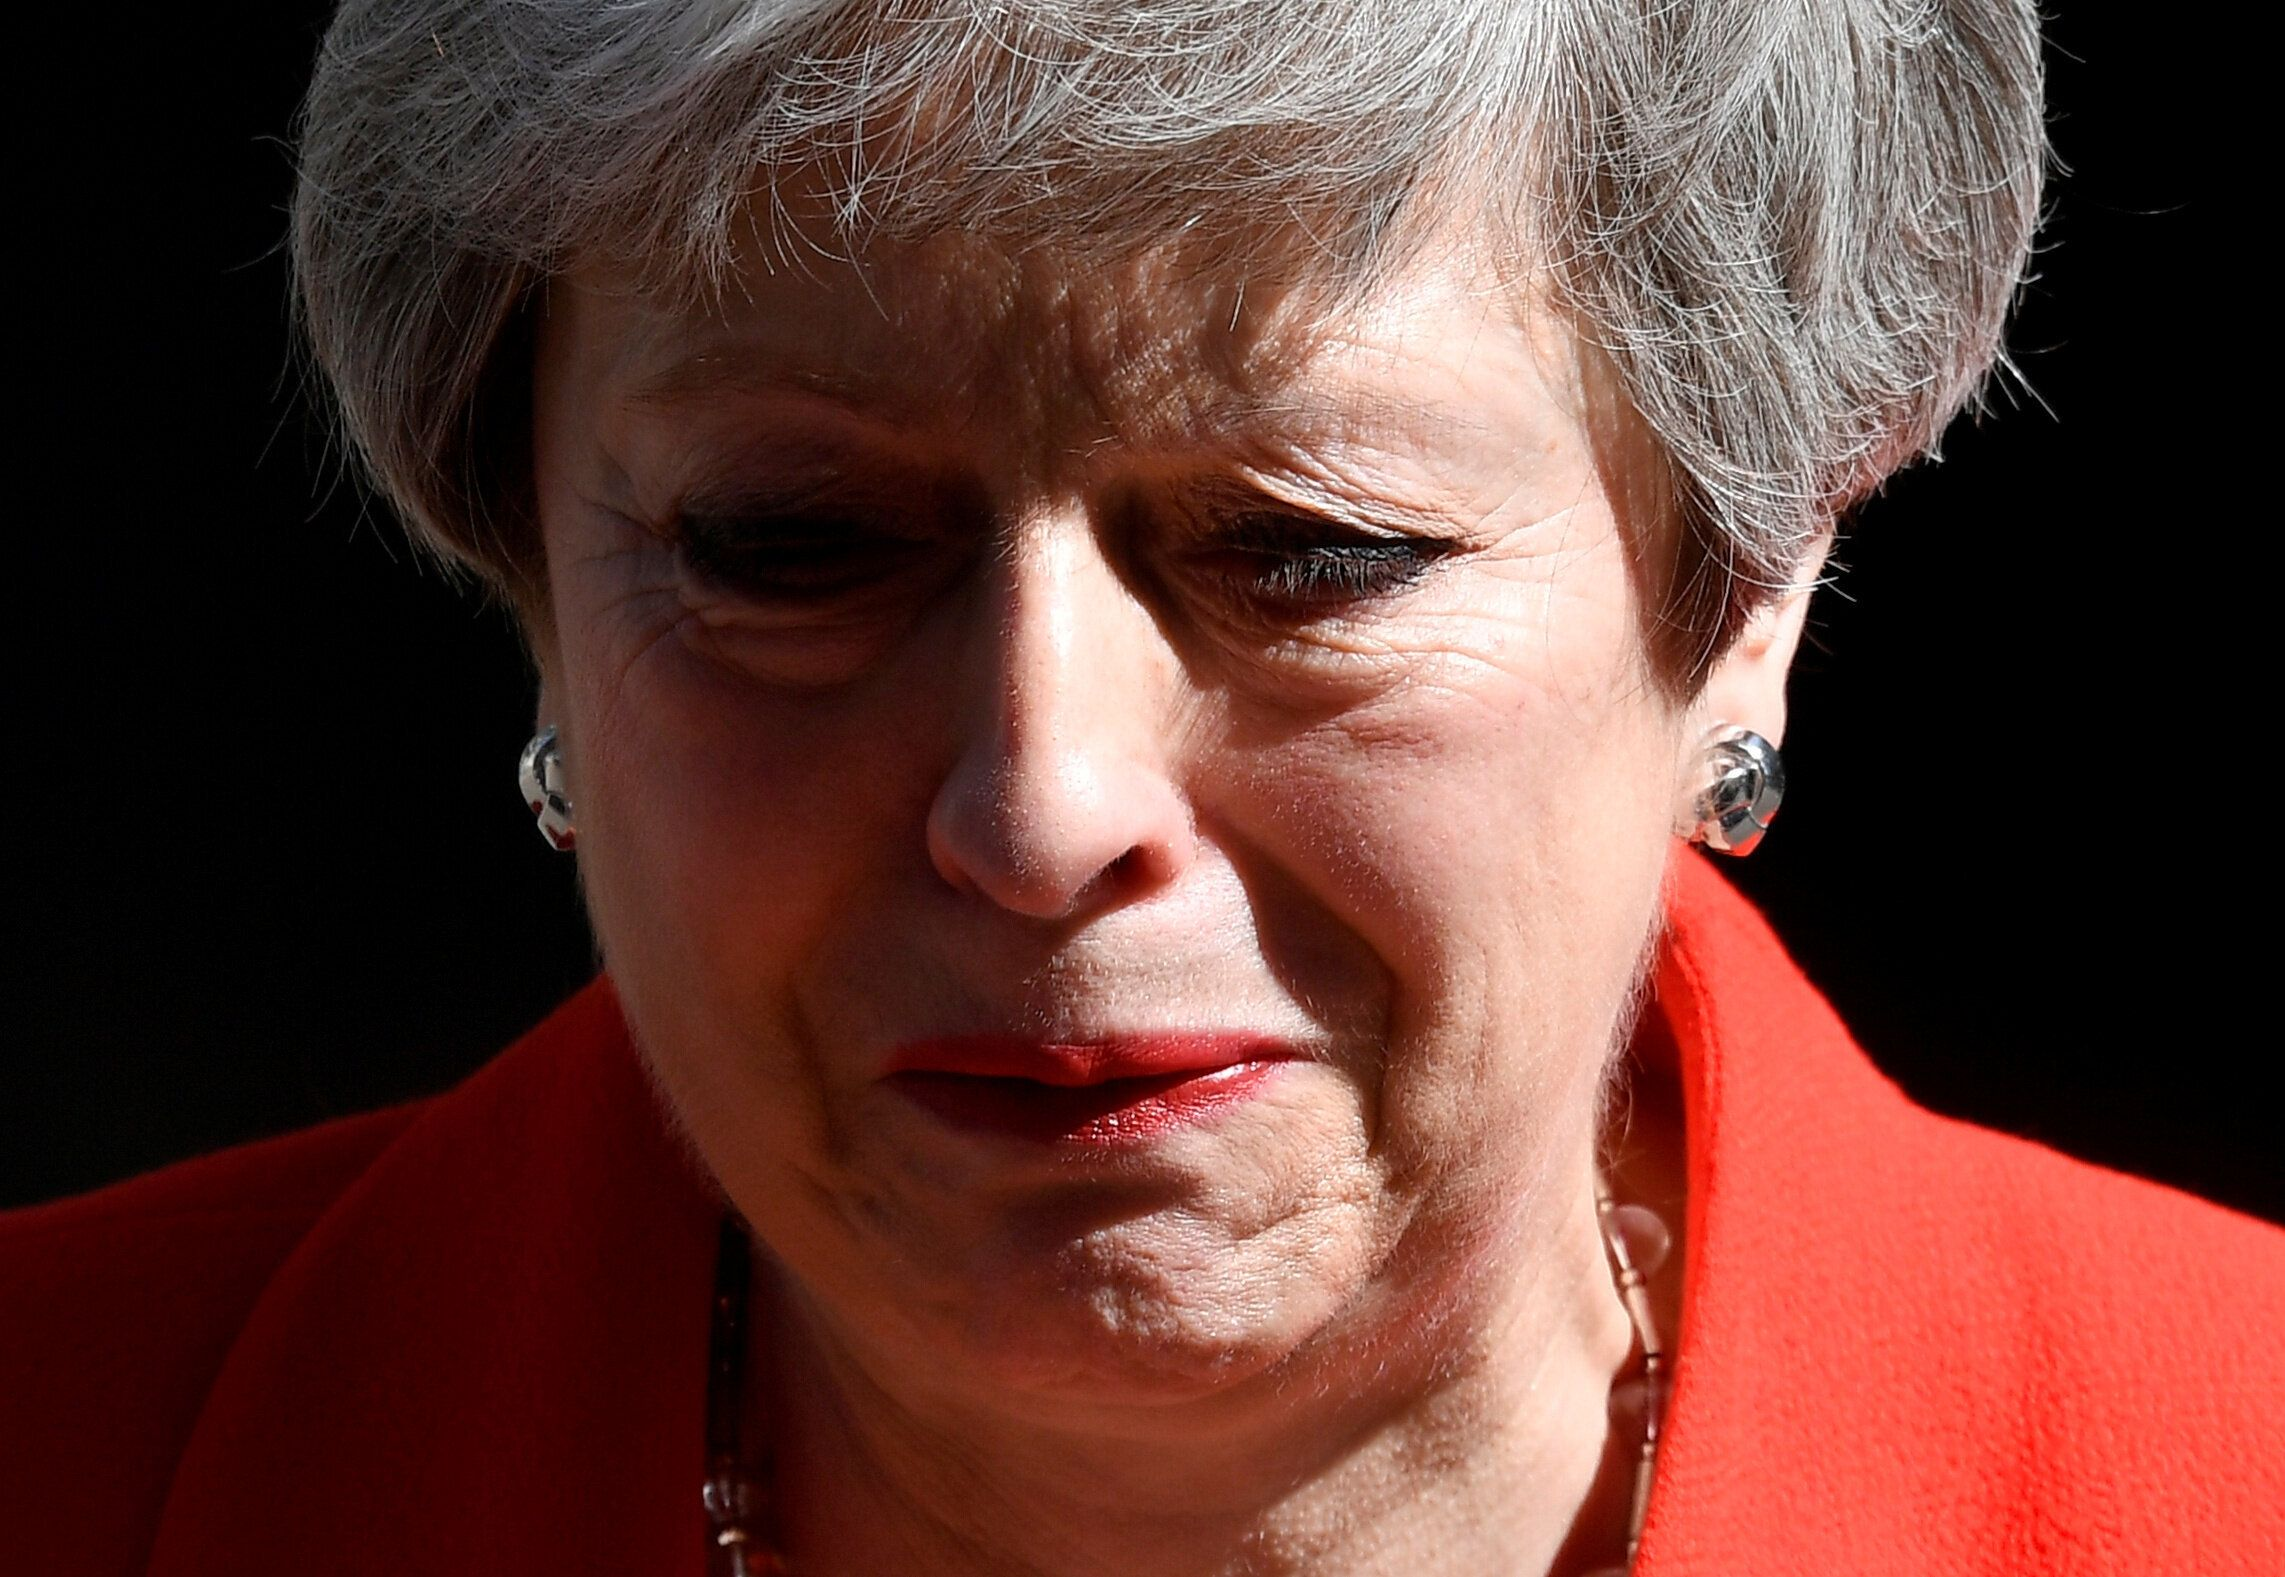 Theresa May Says She Will Resign As U.K. PM After Failing To Deliver